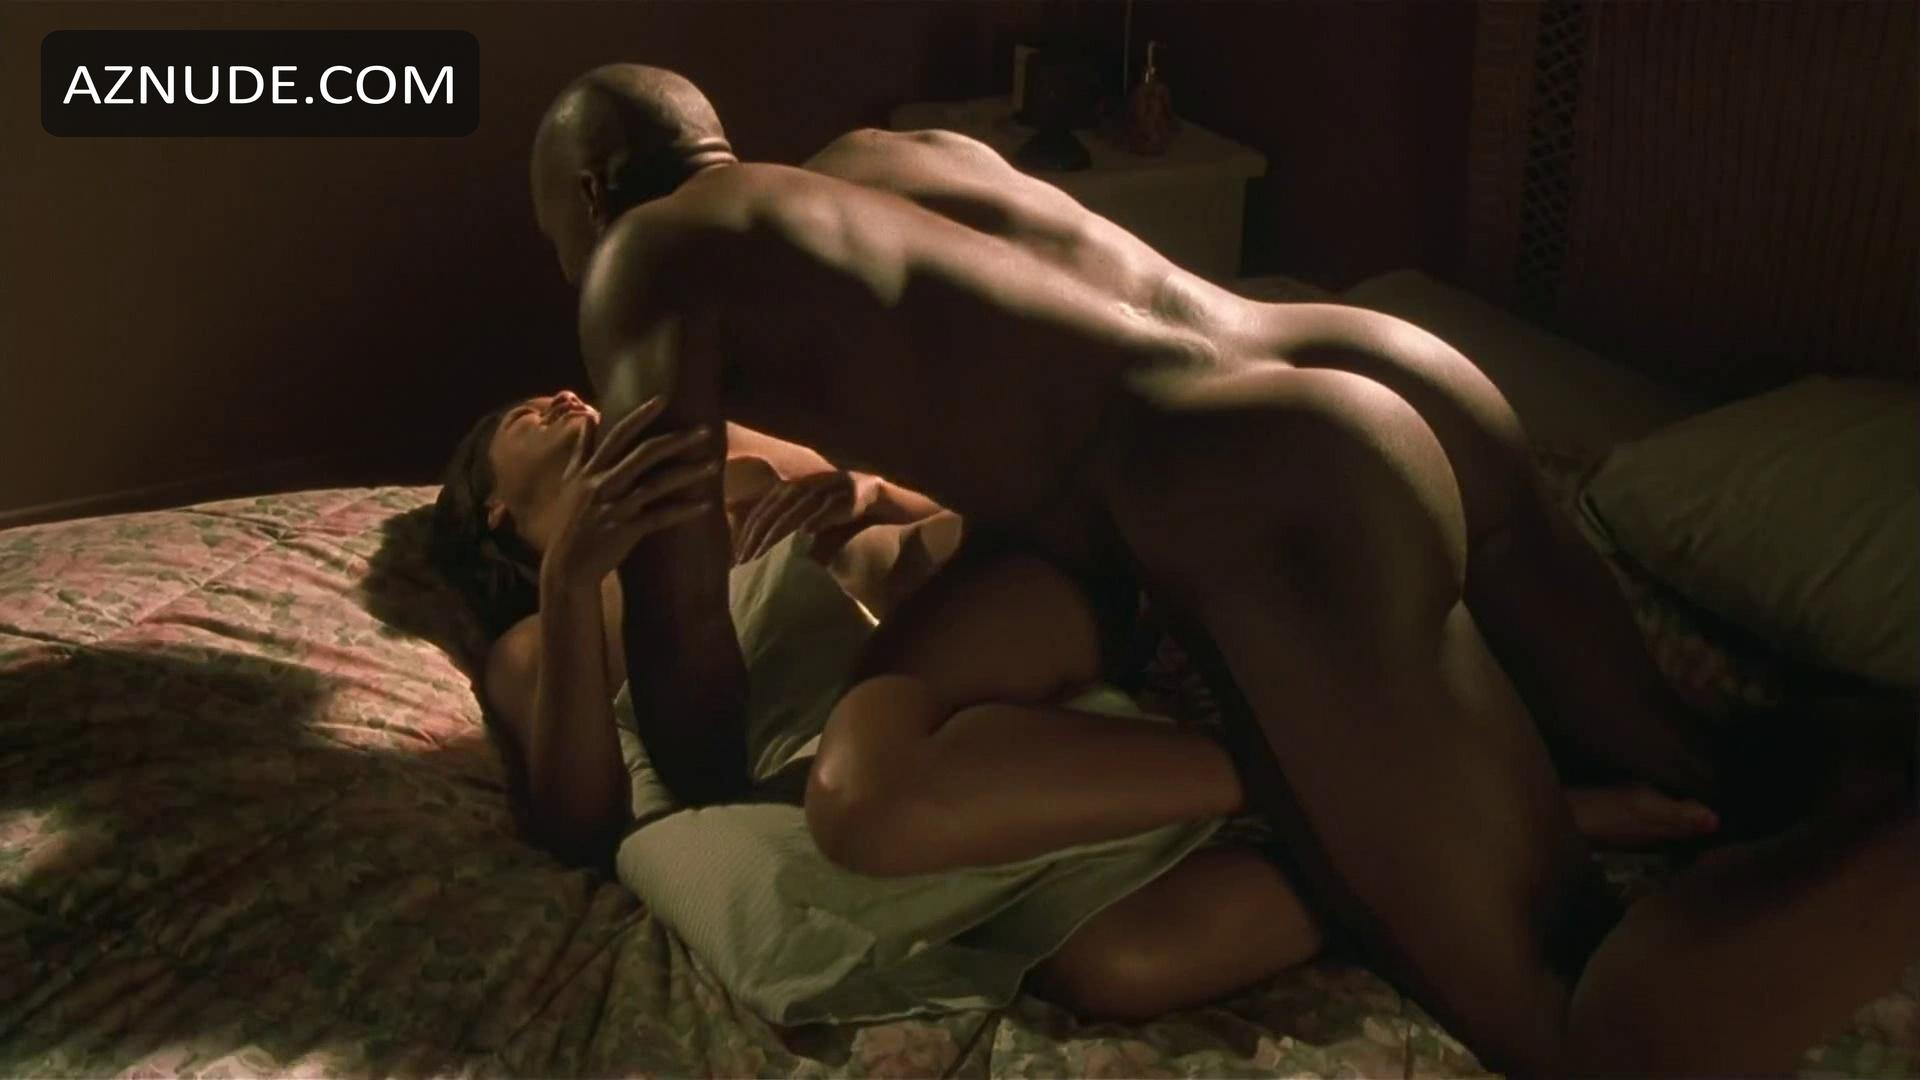 Nude images of tyrese gibson think